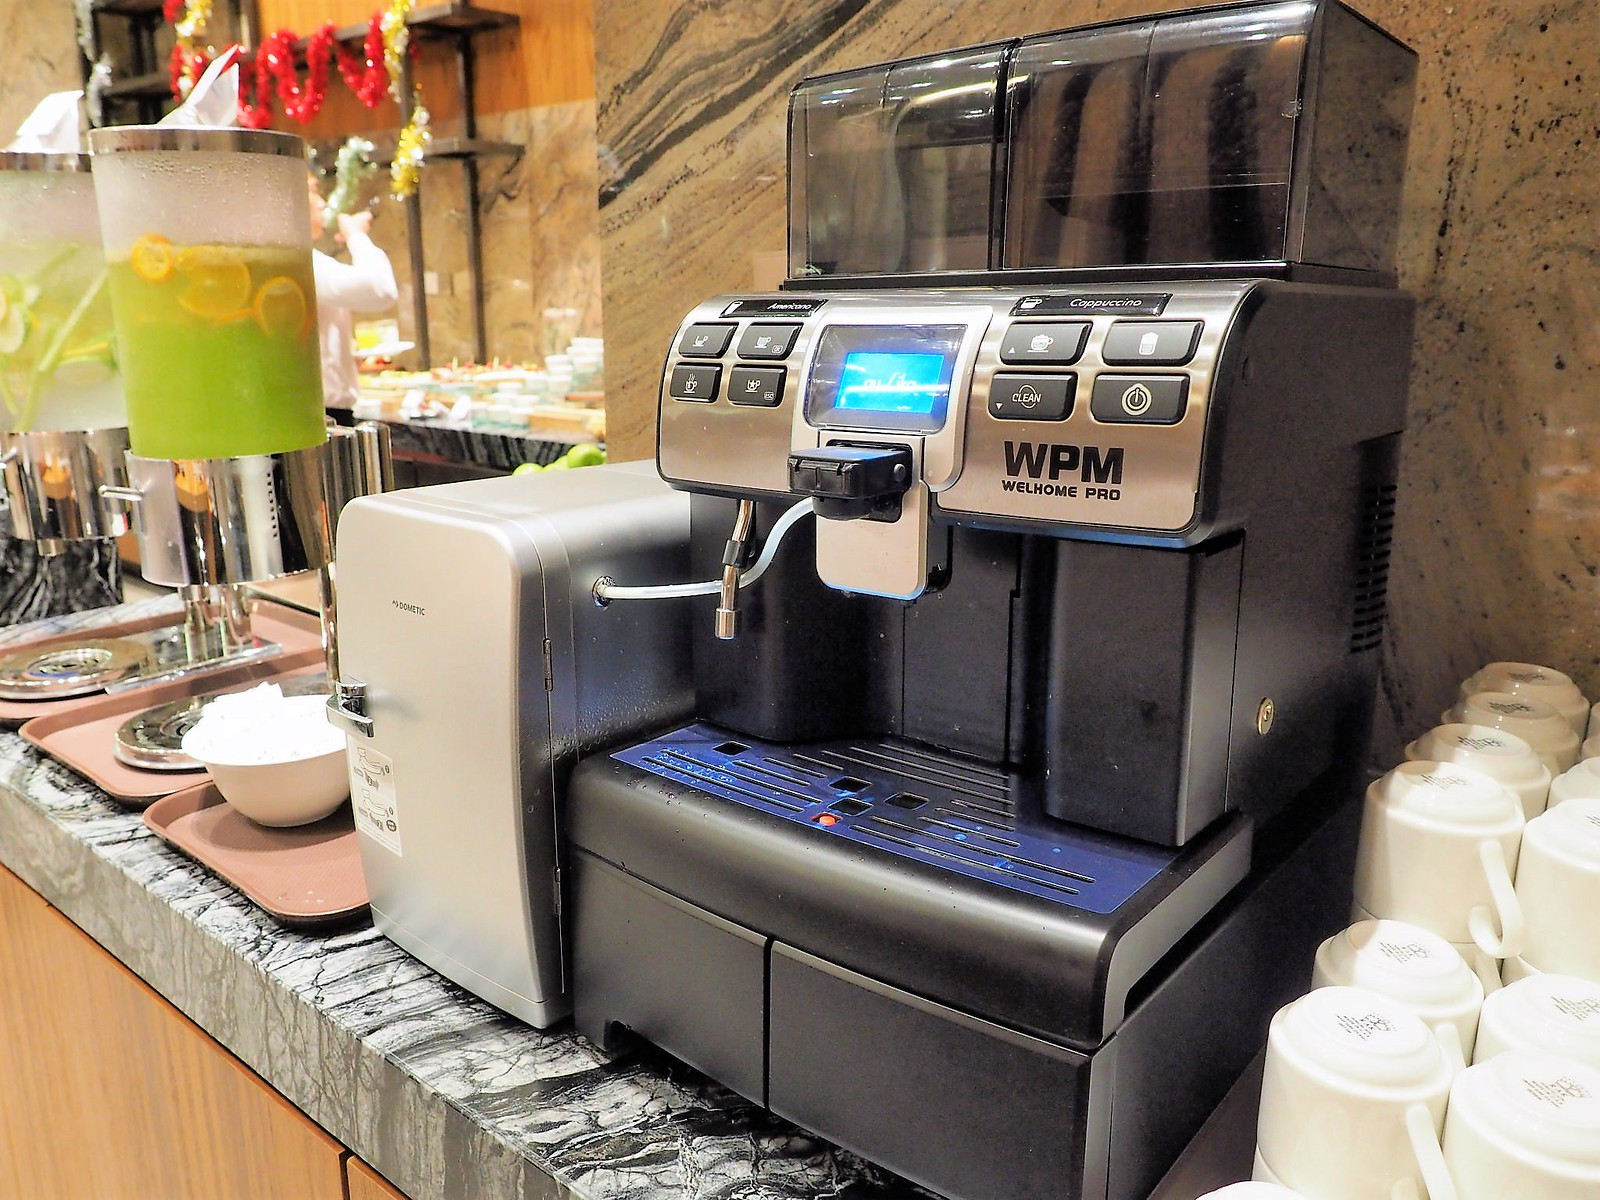 Coffee machine at the buffet restaurant